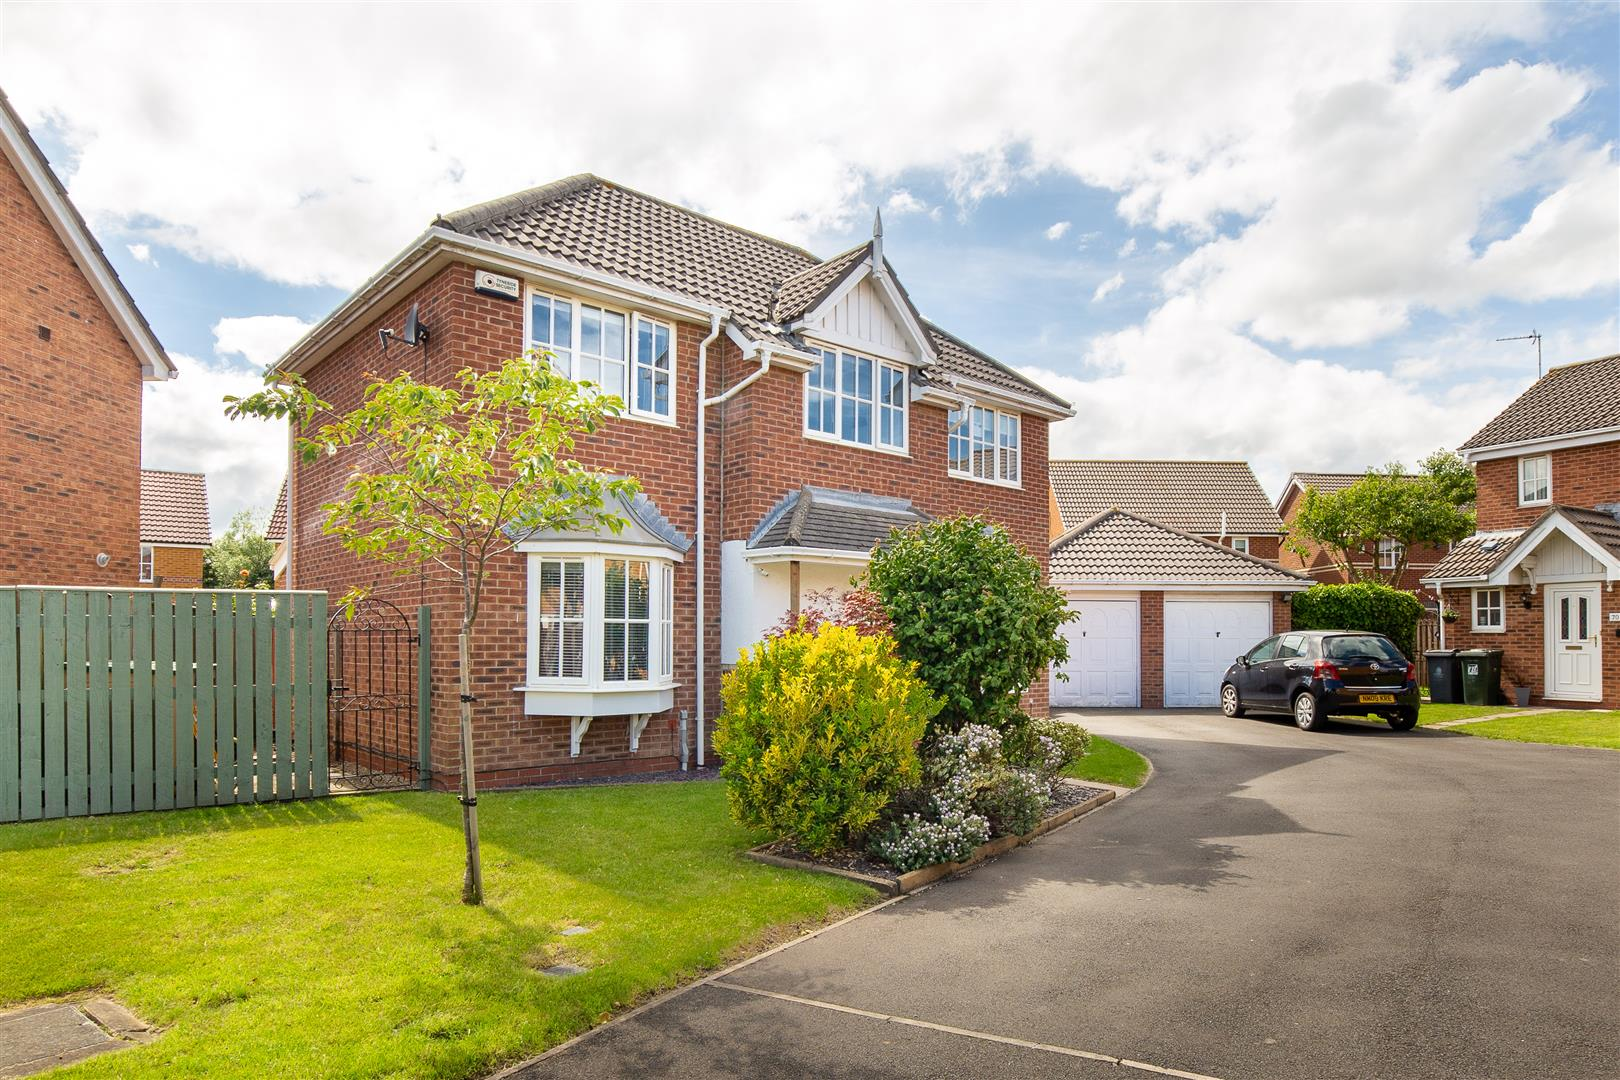 3 bed detached house for sale in West Allotment Newcastle Upon Tyne, NE27 0RF  - Property Image 1